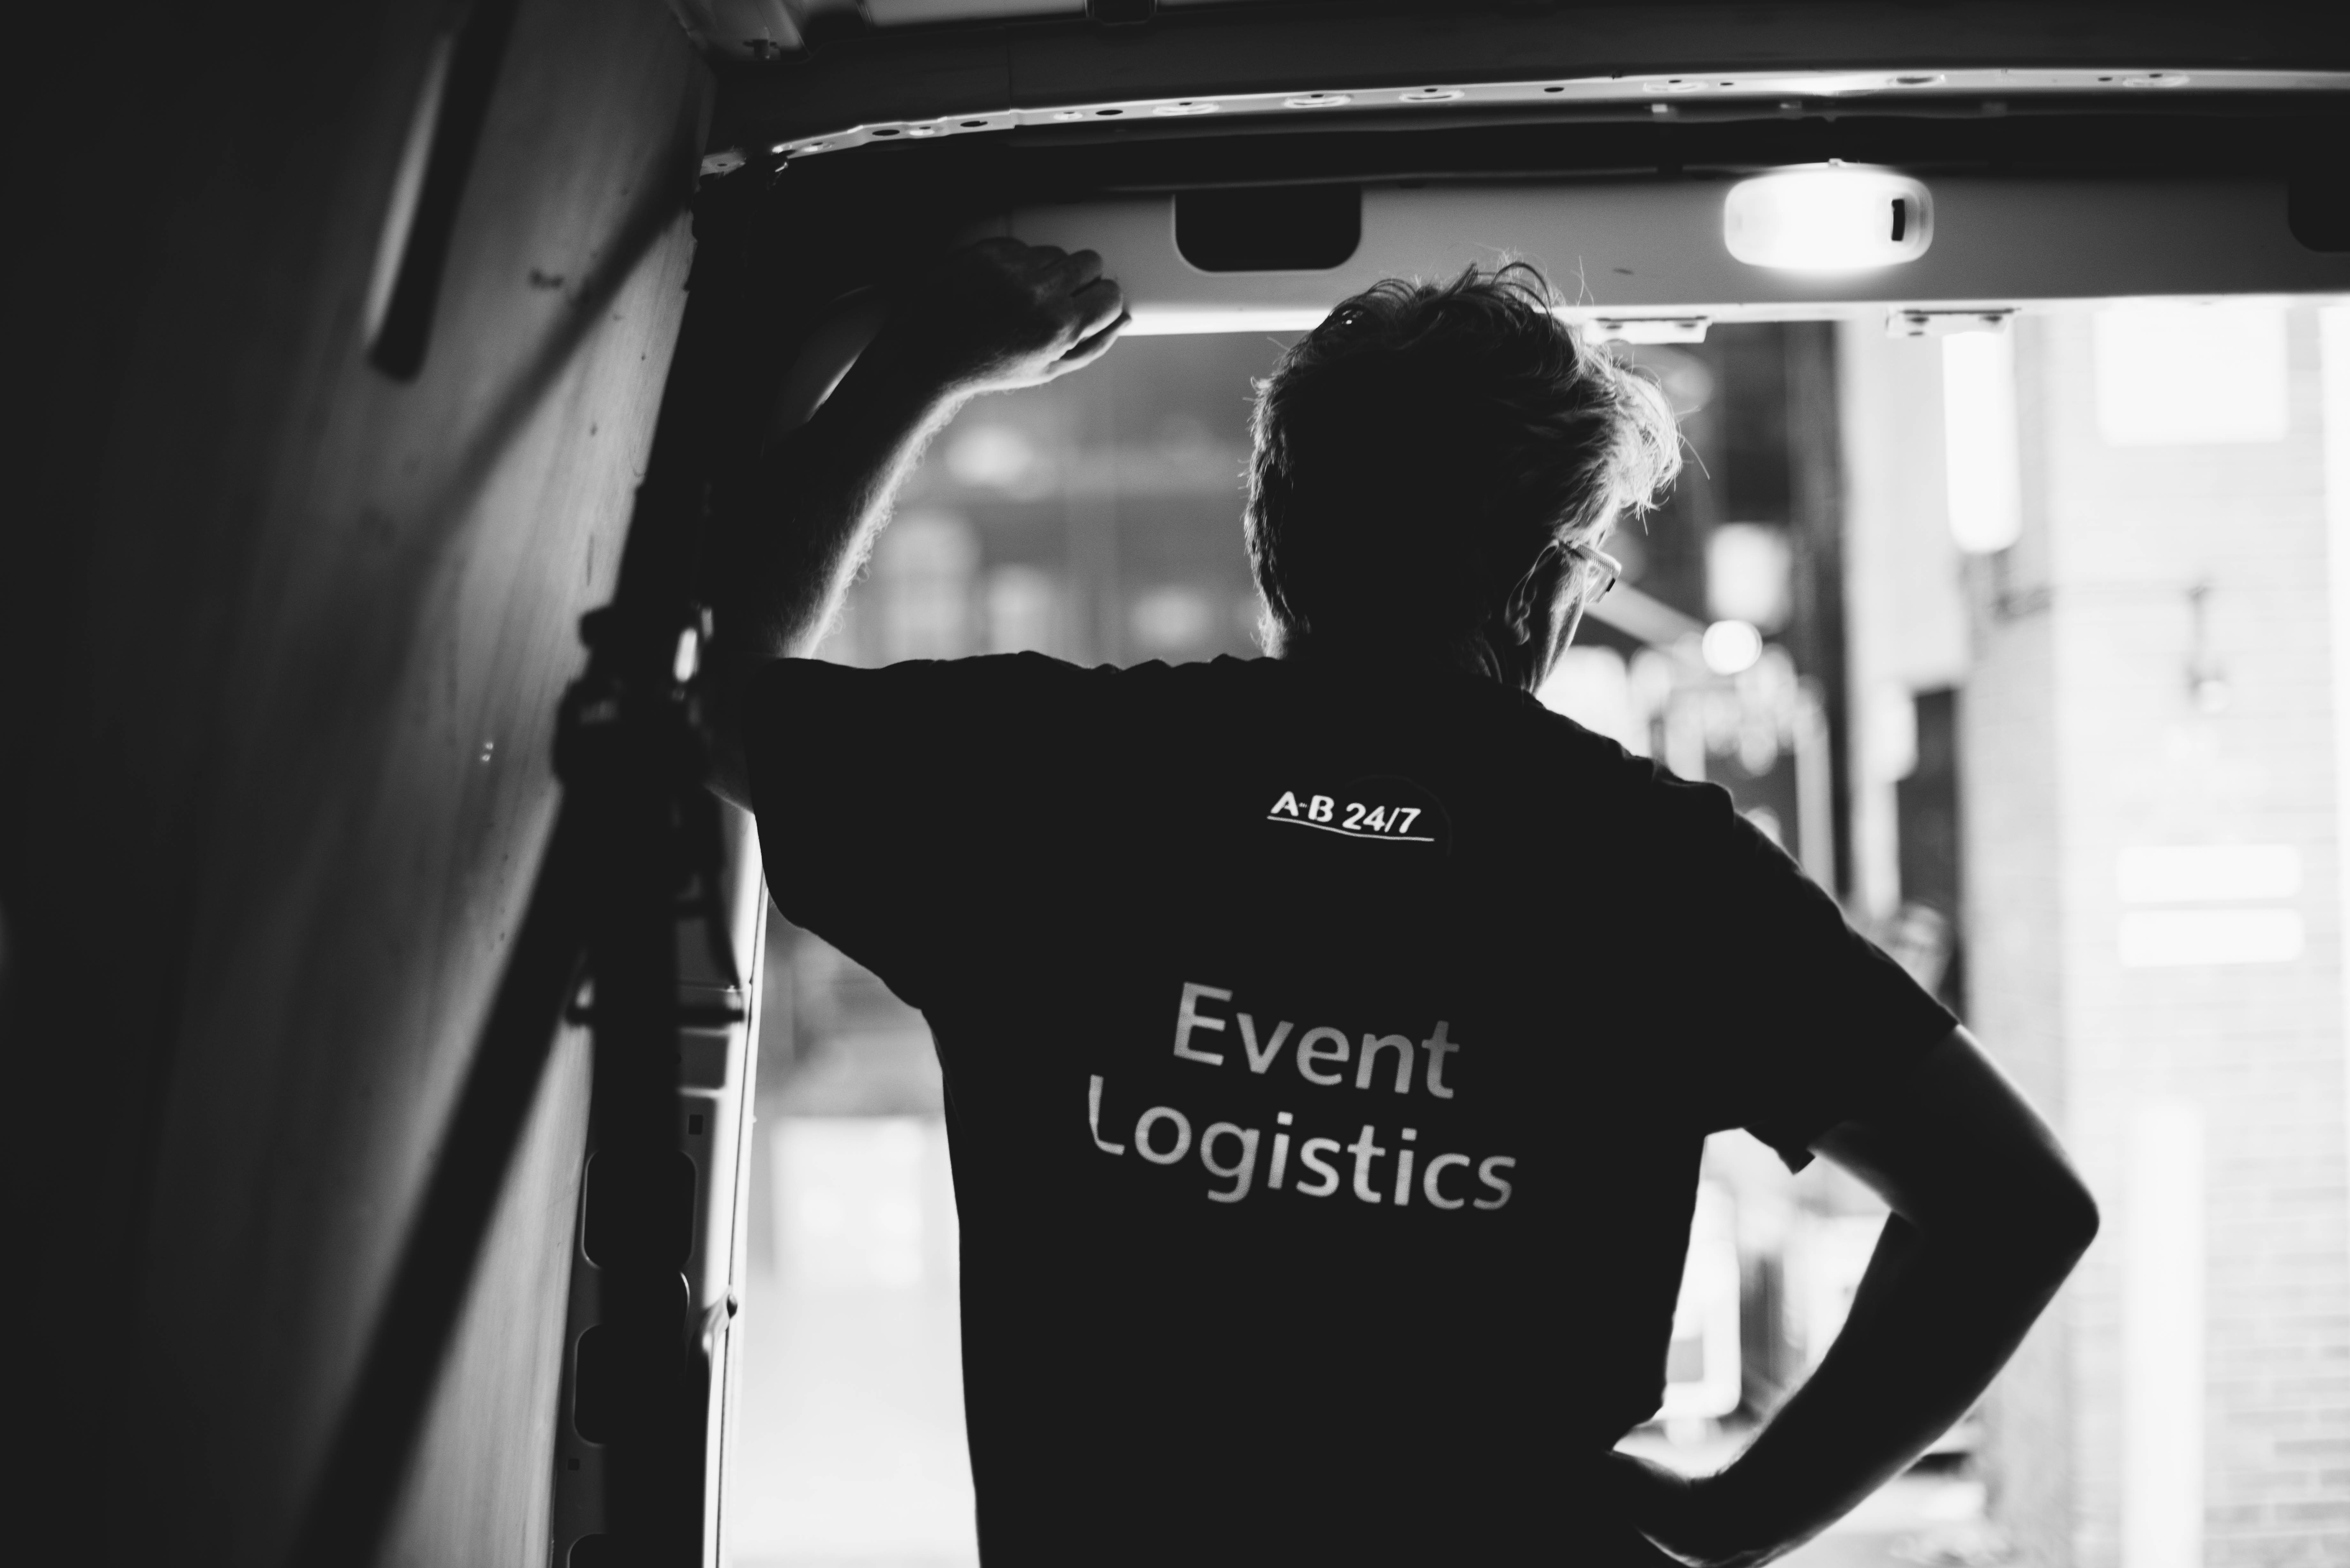 ab247 Event Logistics director Tony in a delivery truck